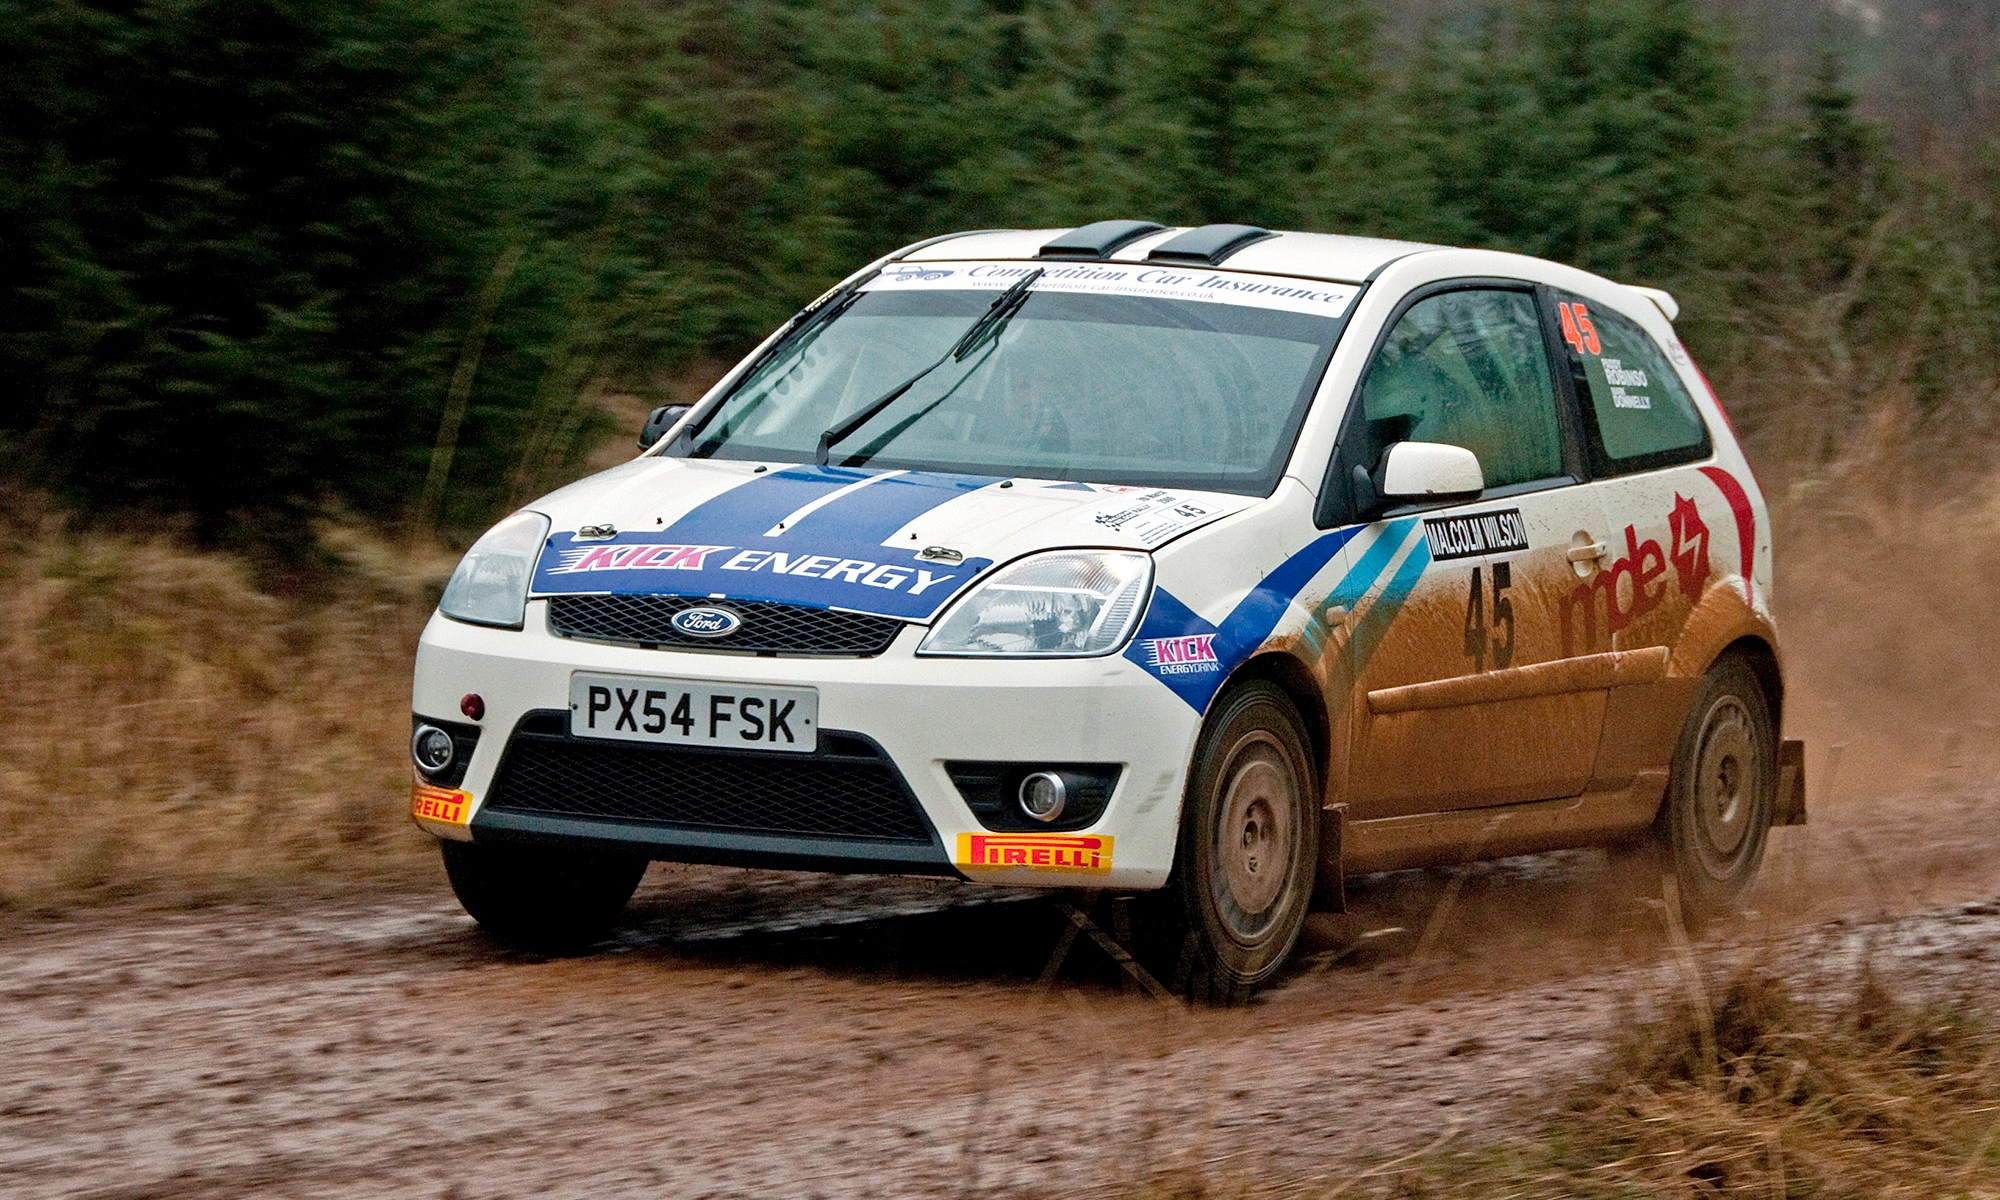 Ford Fiesta ST Off Road